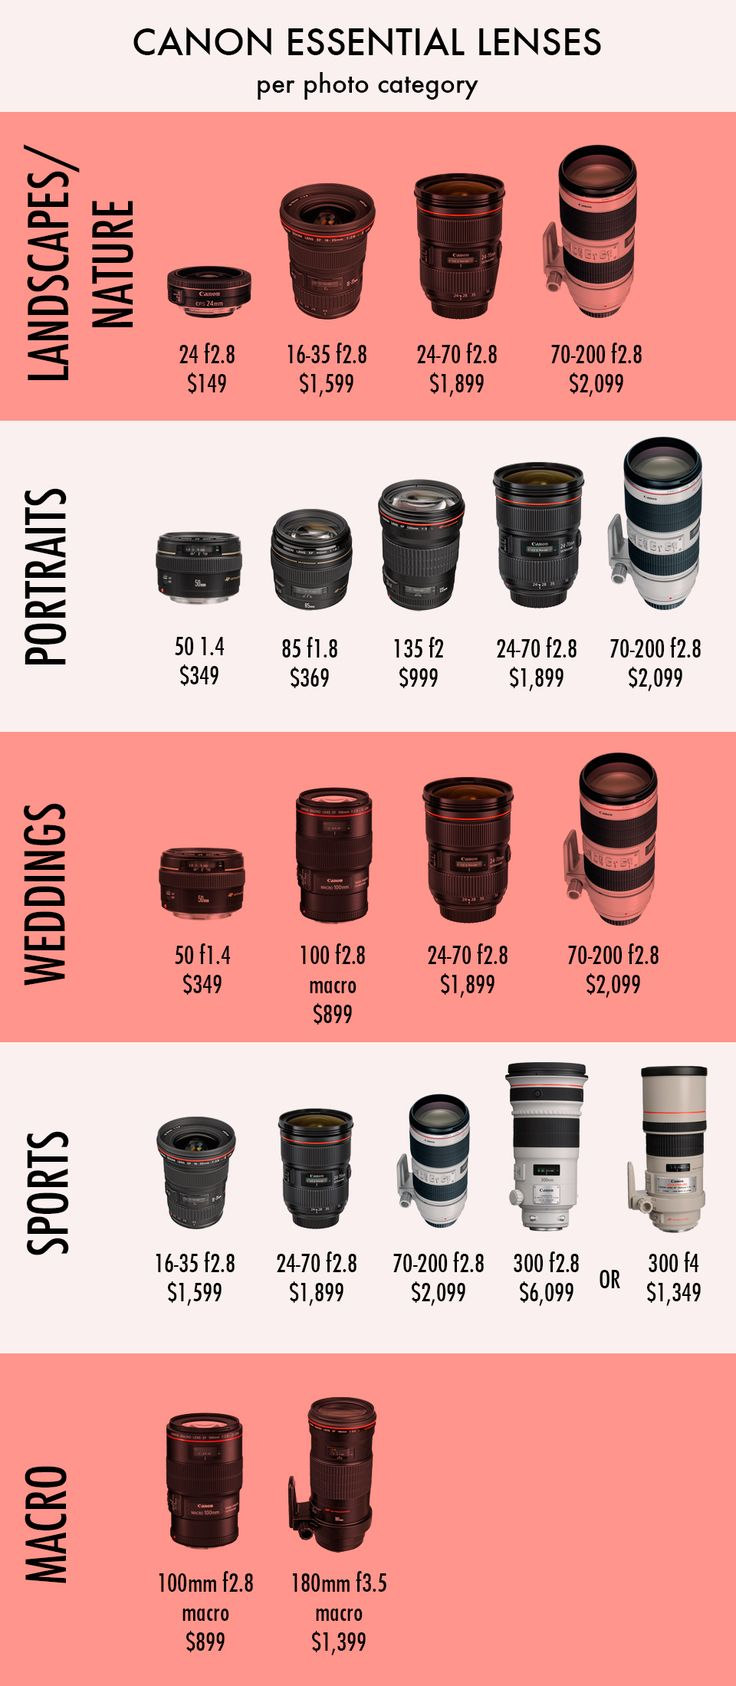 Canon-lens-for-the-job-infographic.jpg 960×2,200 pixeles